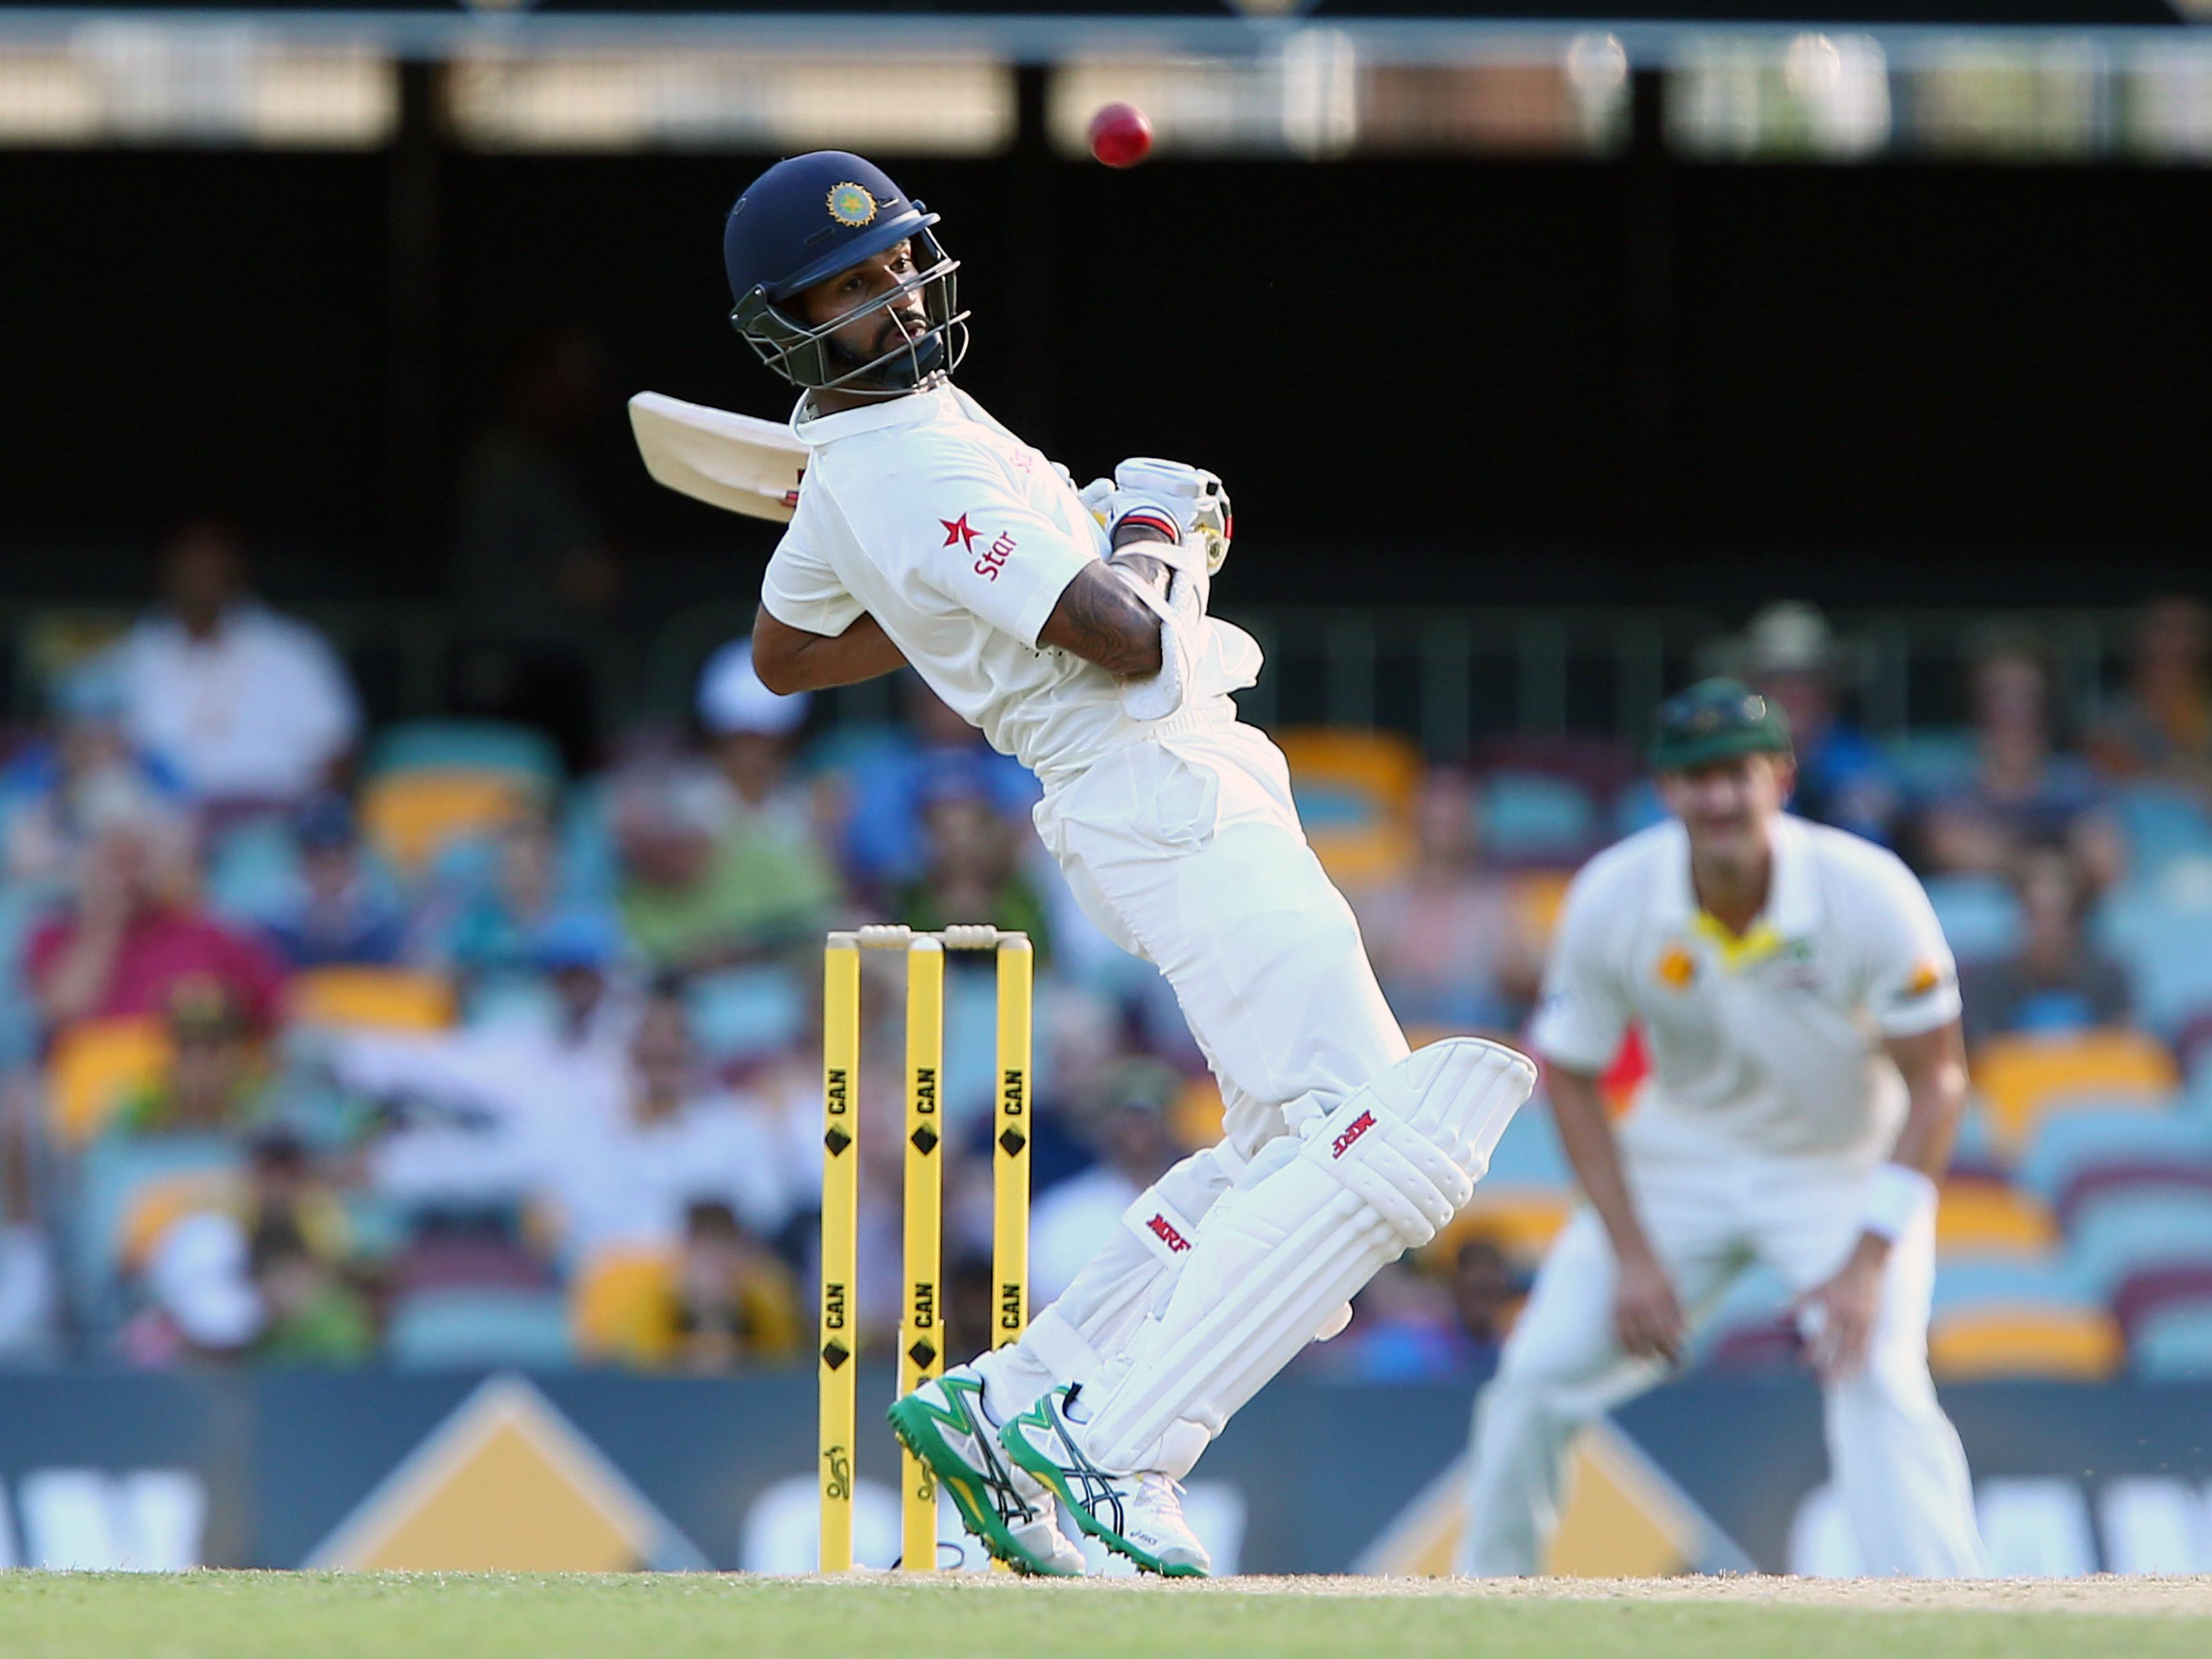 Dhawan hurt in practice ahead of day 4, 2nd test